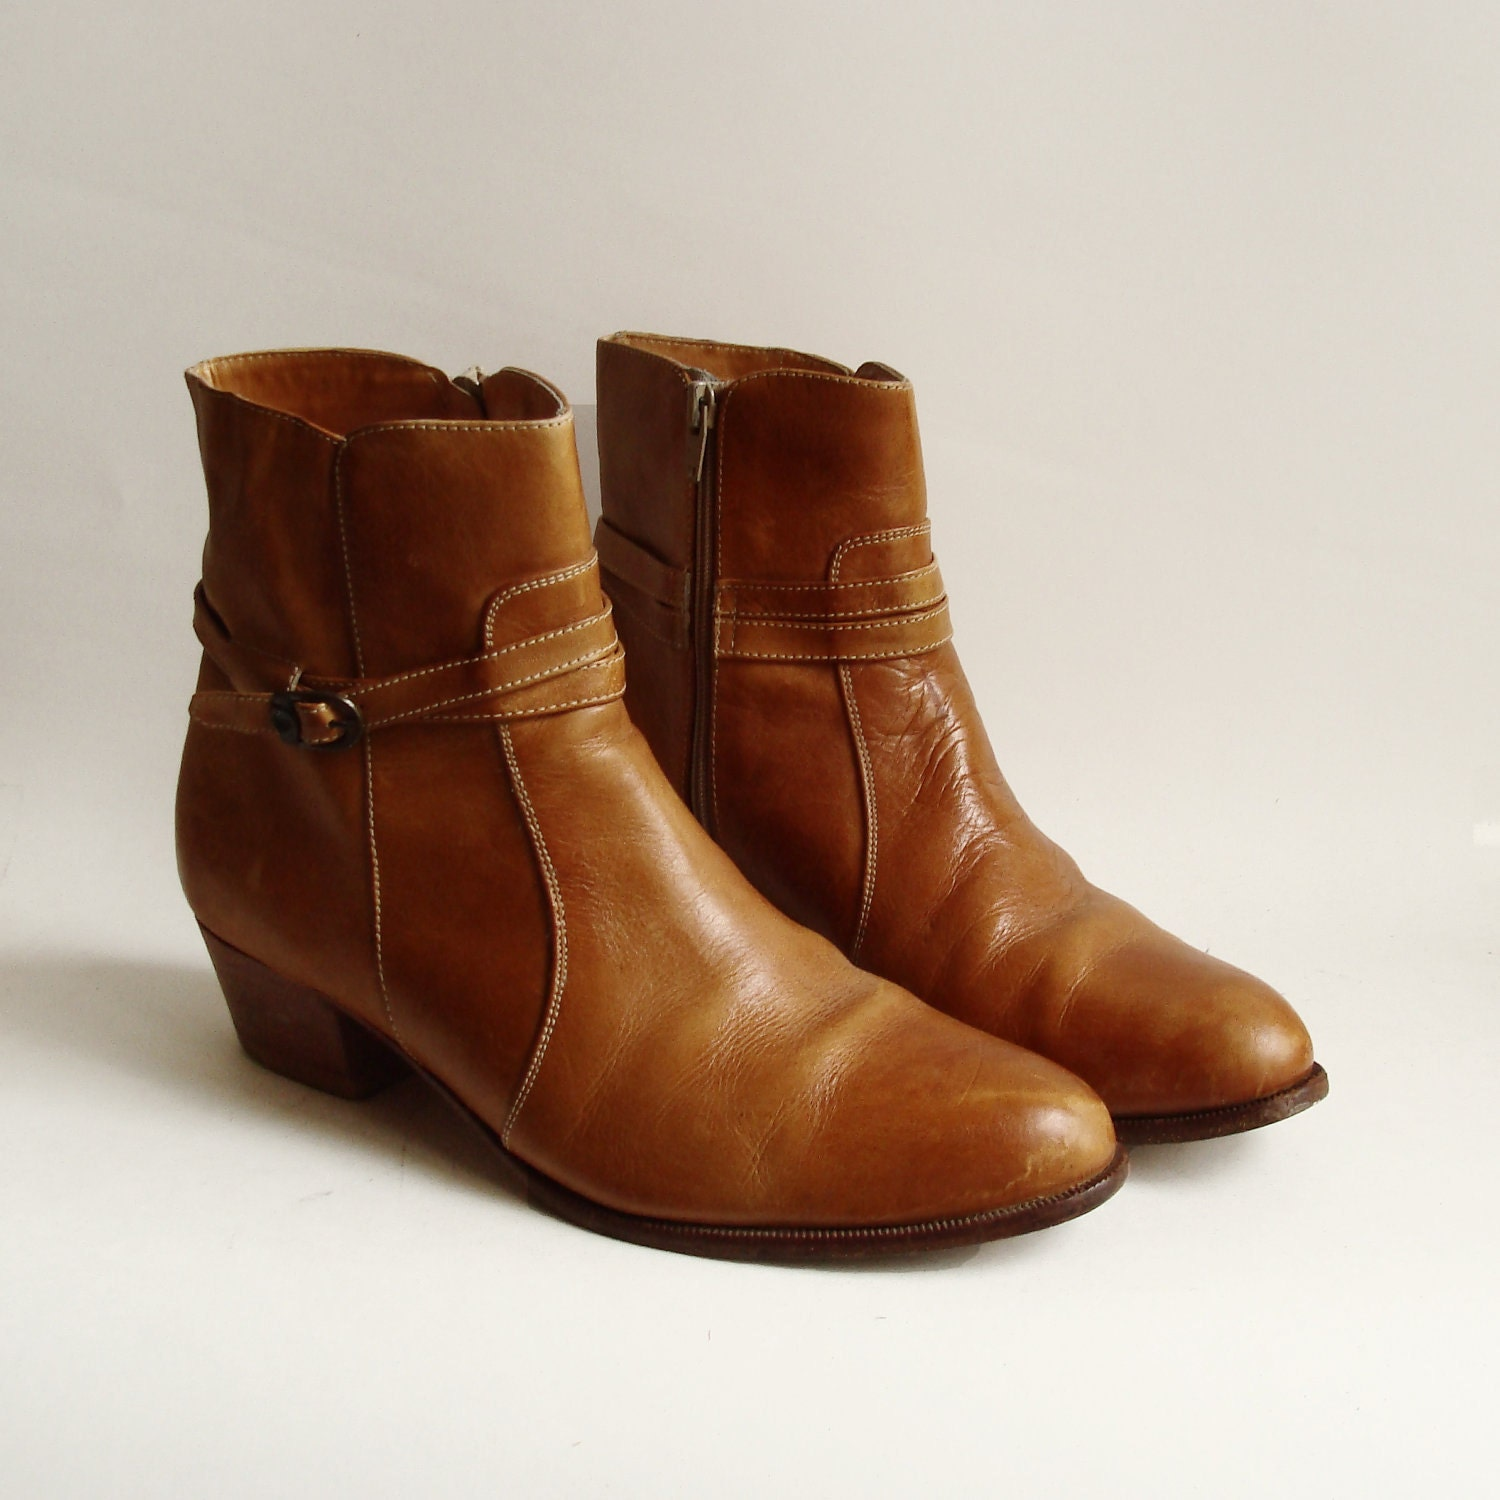 New Go Back Gt Gallery For Gt Brown Leather Boots Women